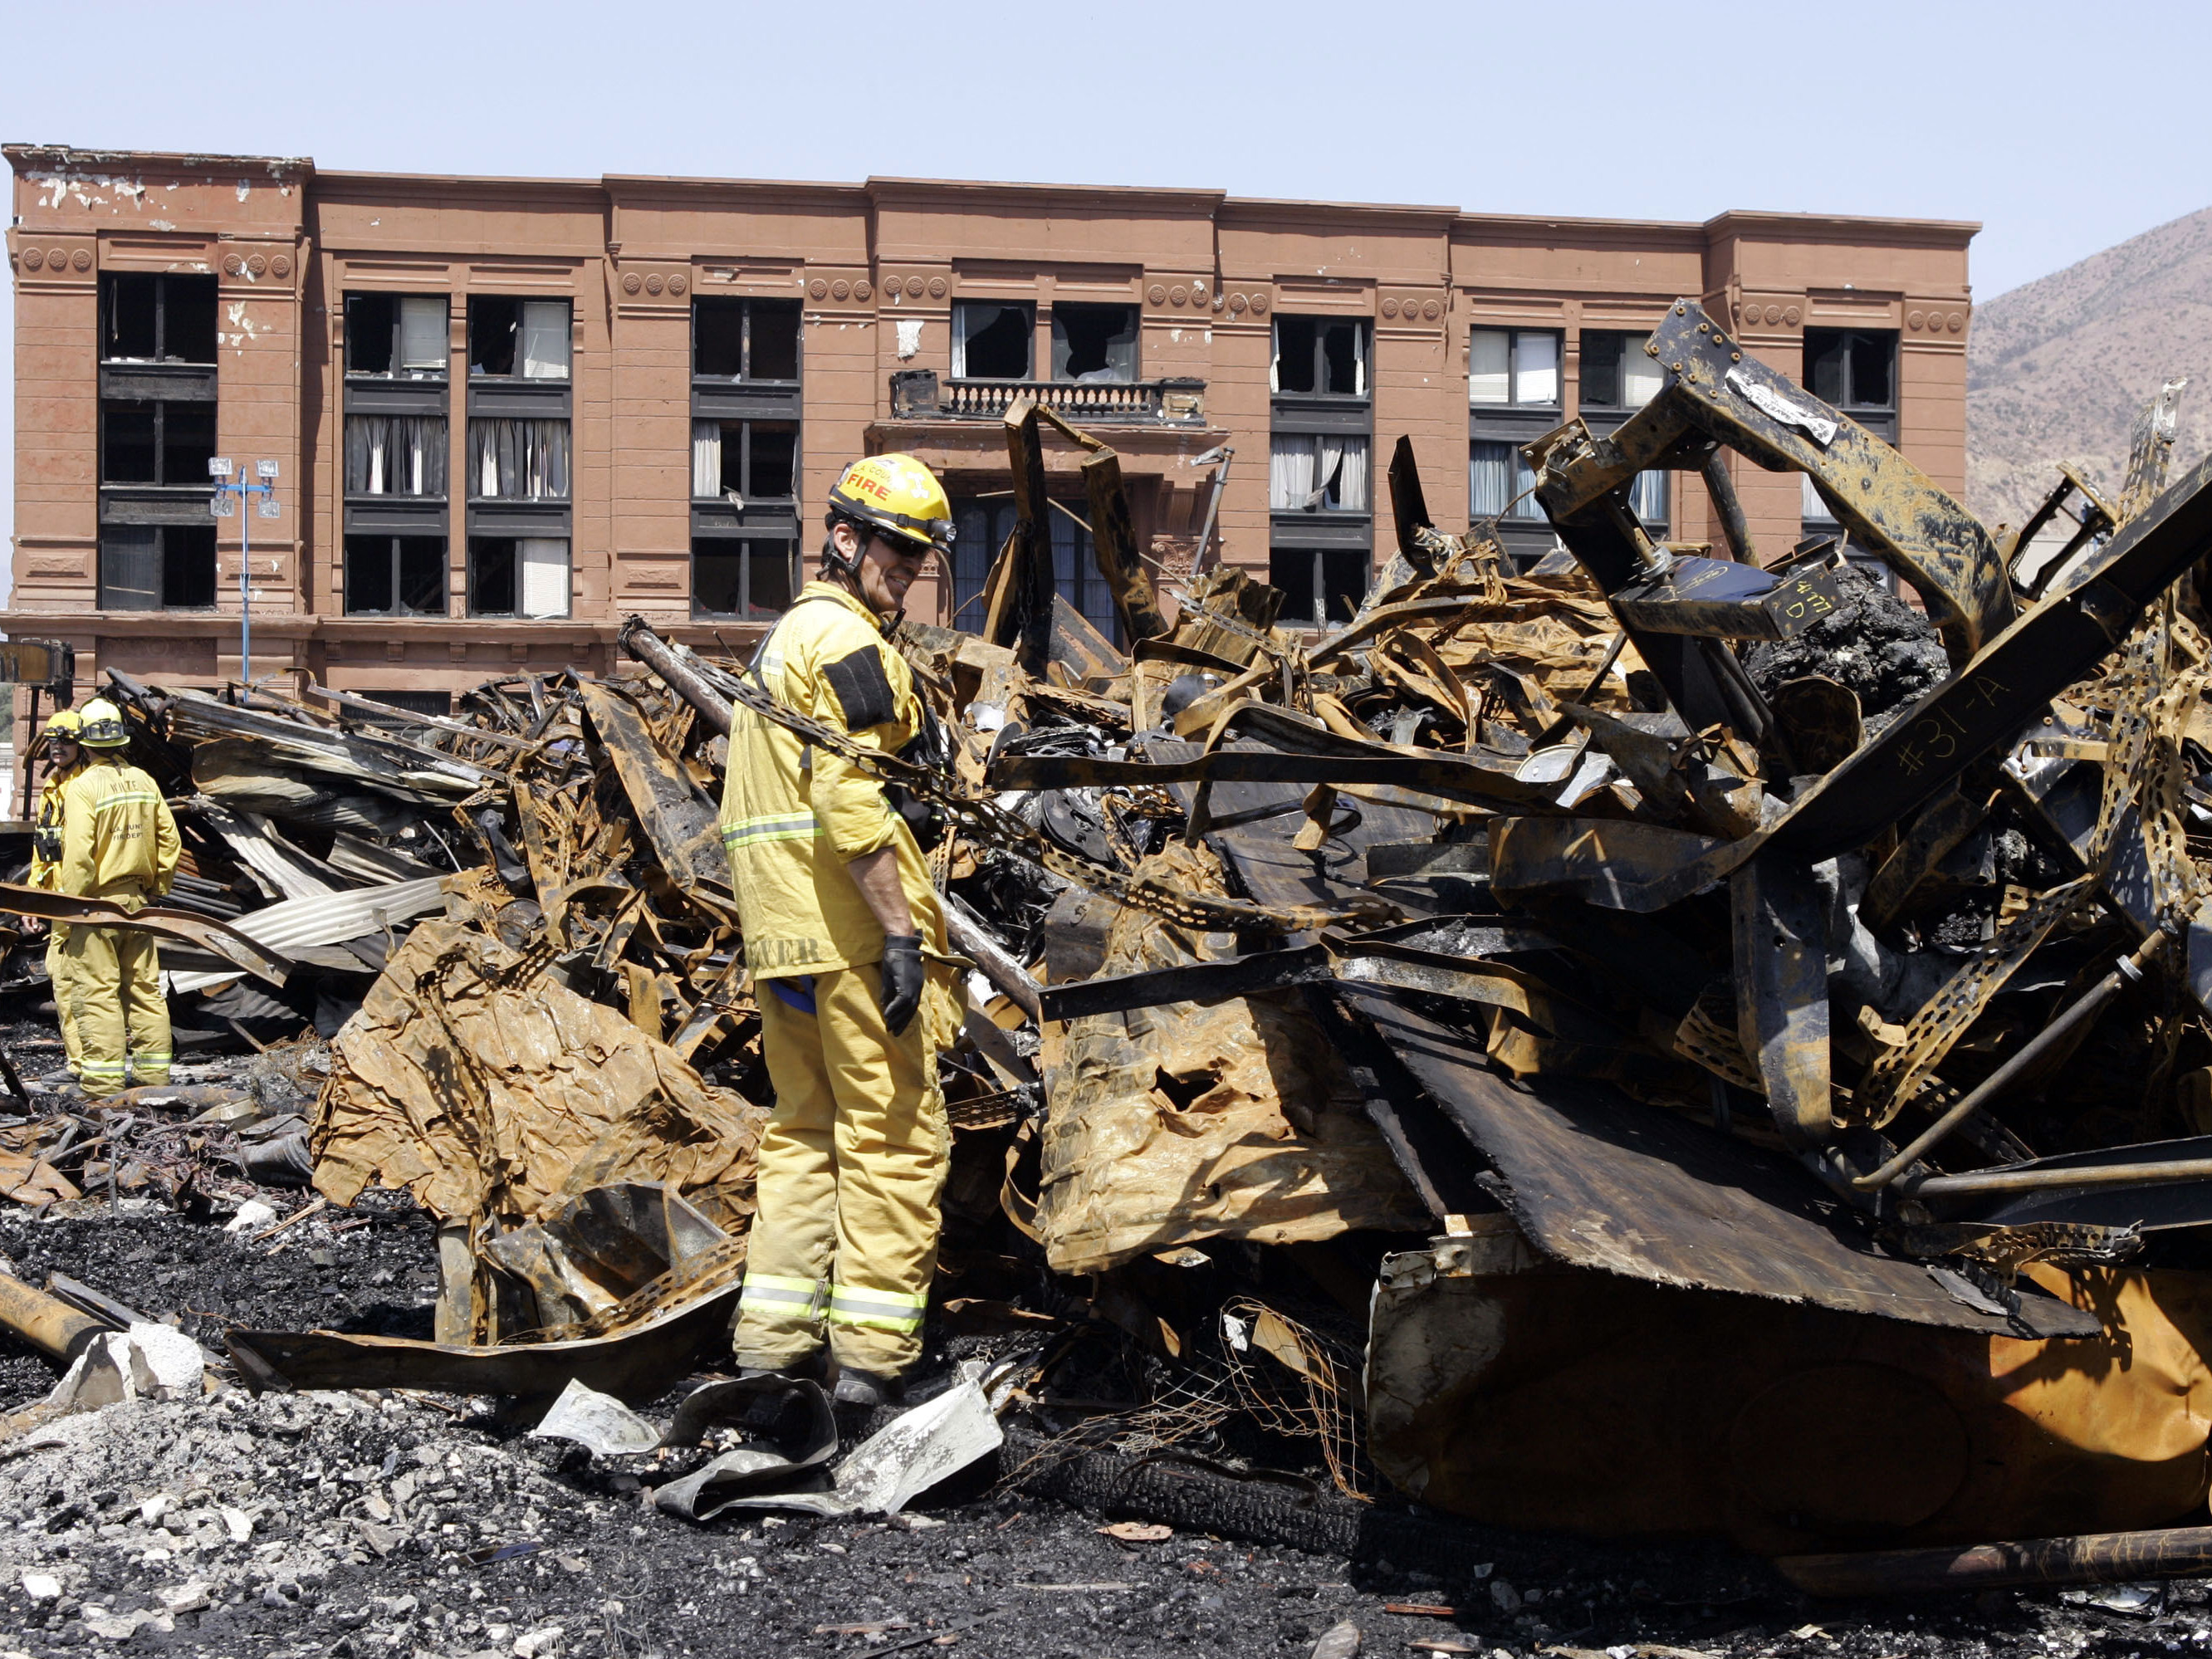 Court Records Confirm Works From Nirvana, Elton John And Others Damaged In 2008 Fire